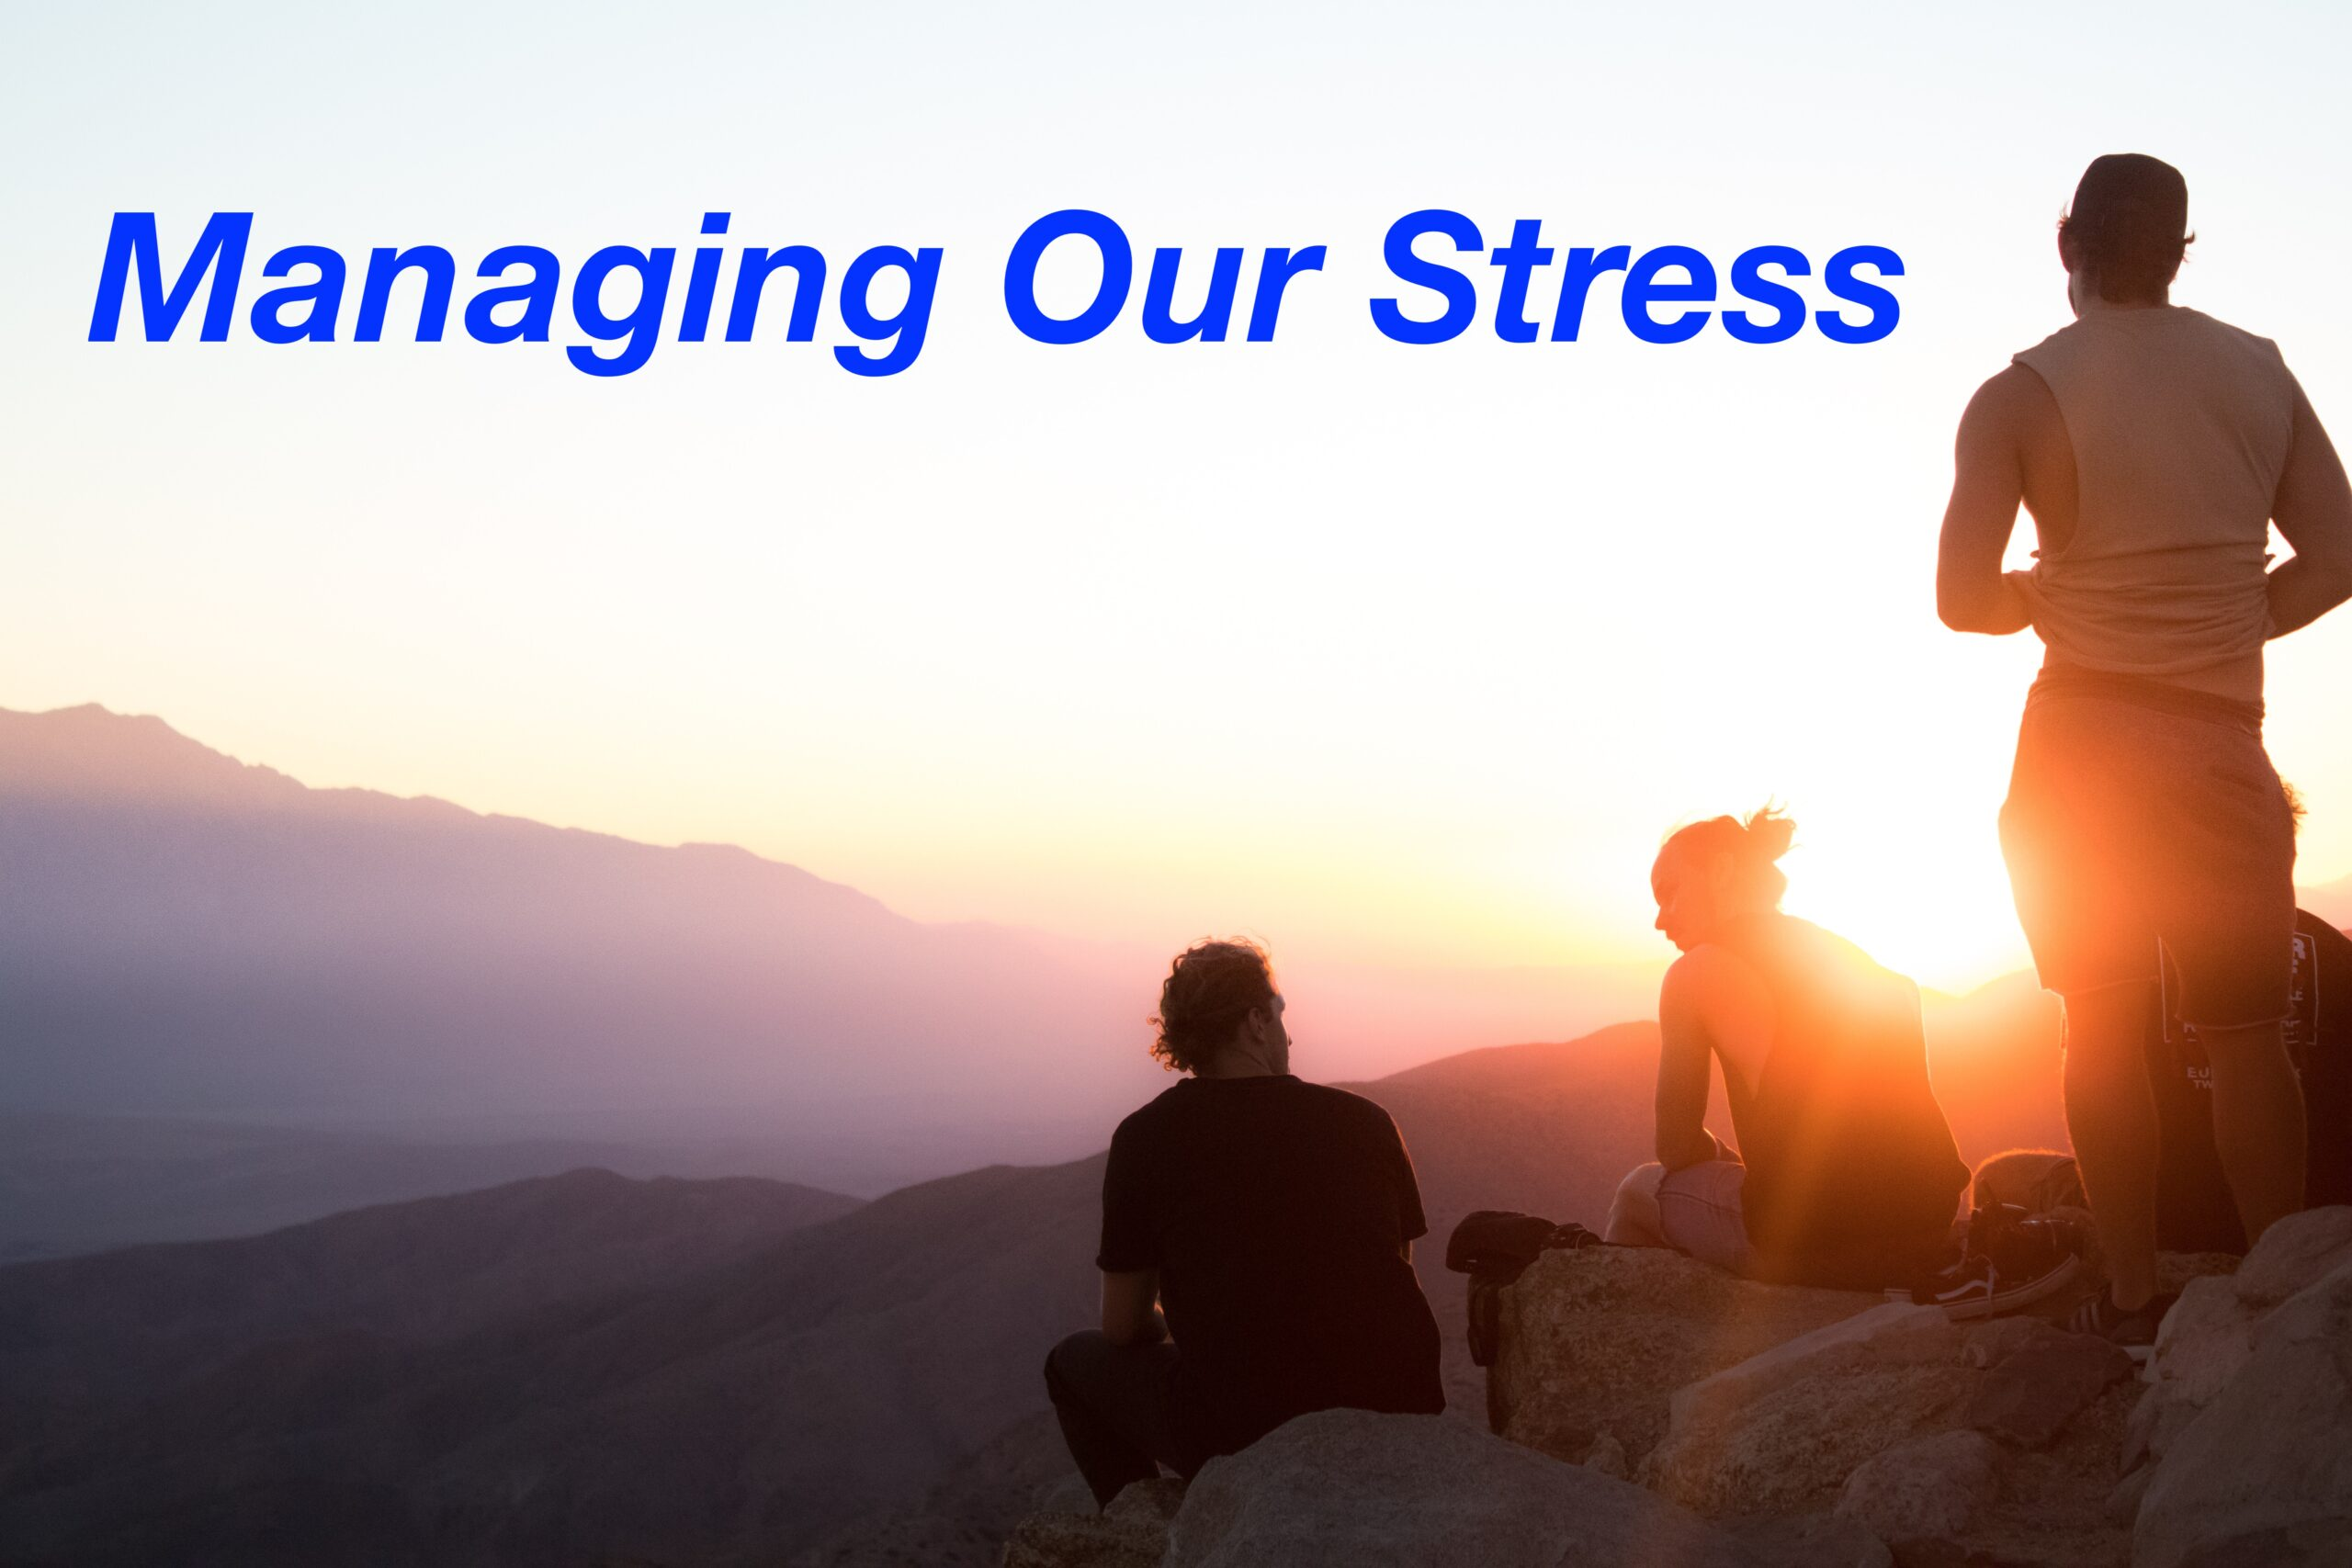 Managing Our Stress During COVID-19